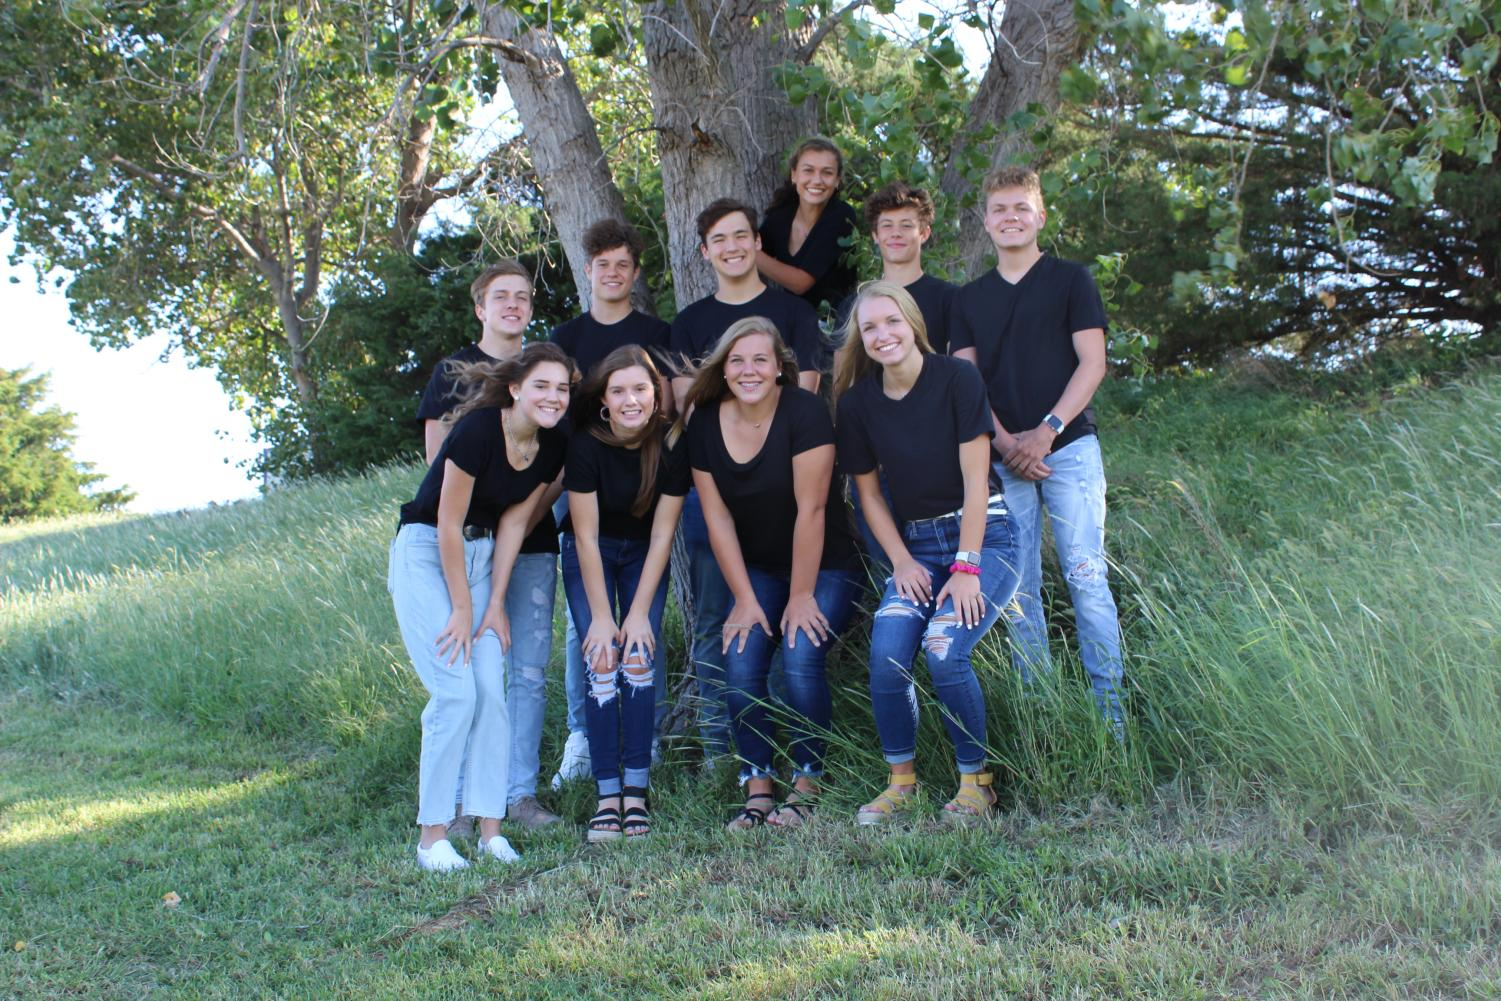 Homecoming candidates (back row) Seth Eklund, Aaron Kitchener, Braedon McVay, Madeline Blake, Luke Van Tassel, Colyn O'Connor, (front row), Hope Nurberg, Meredith Tillberg, Kate Weis, and Katie Moddelmog will learn tonight at 6:30 who will be king and queen.